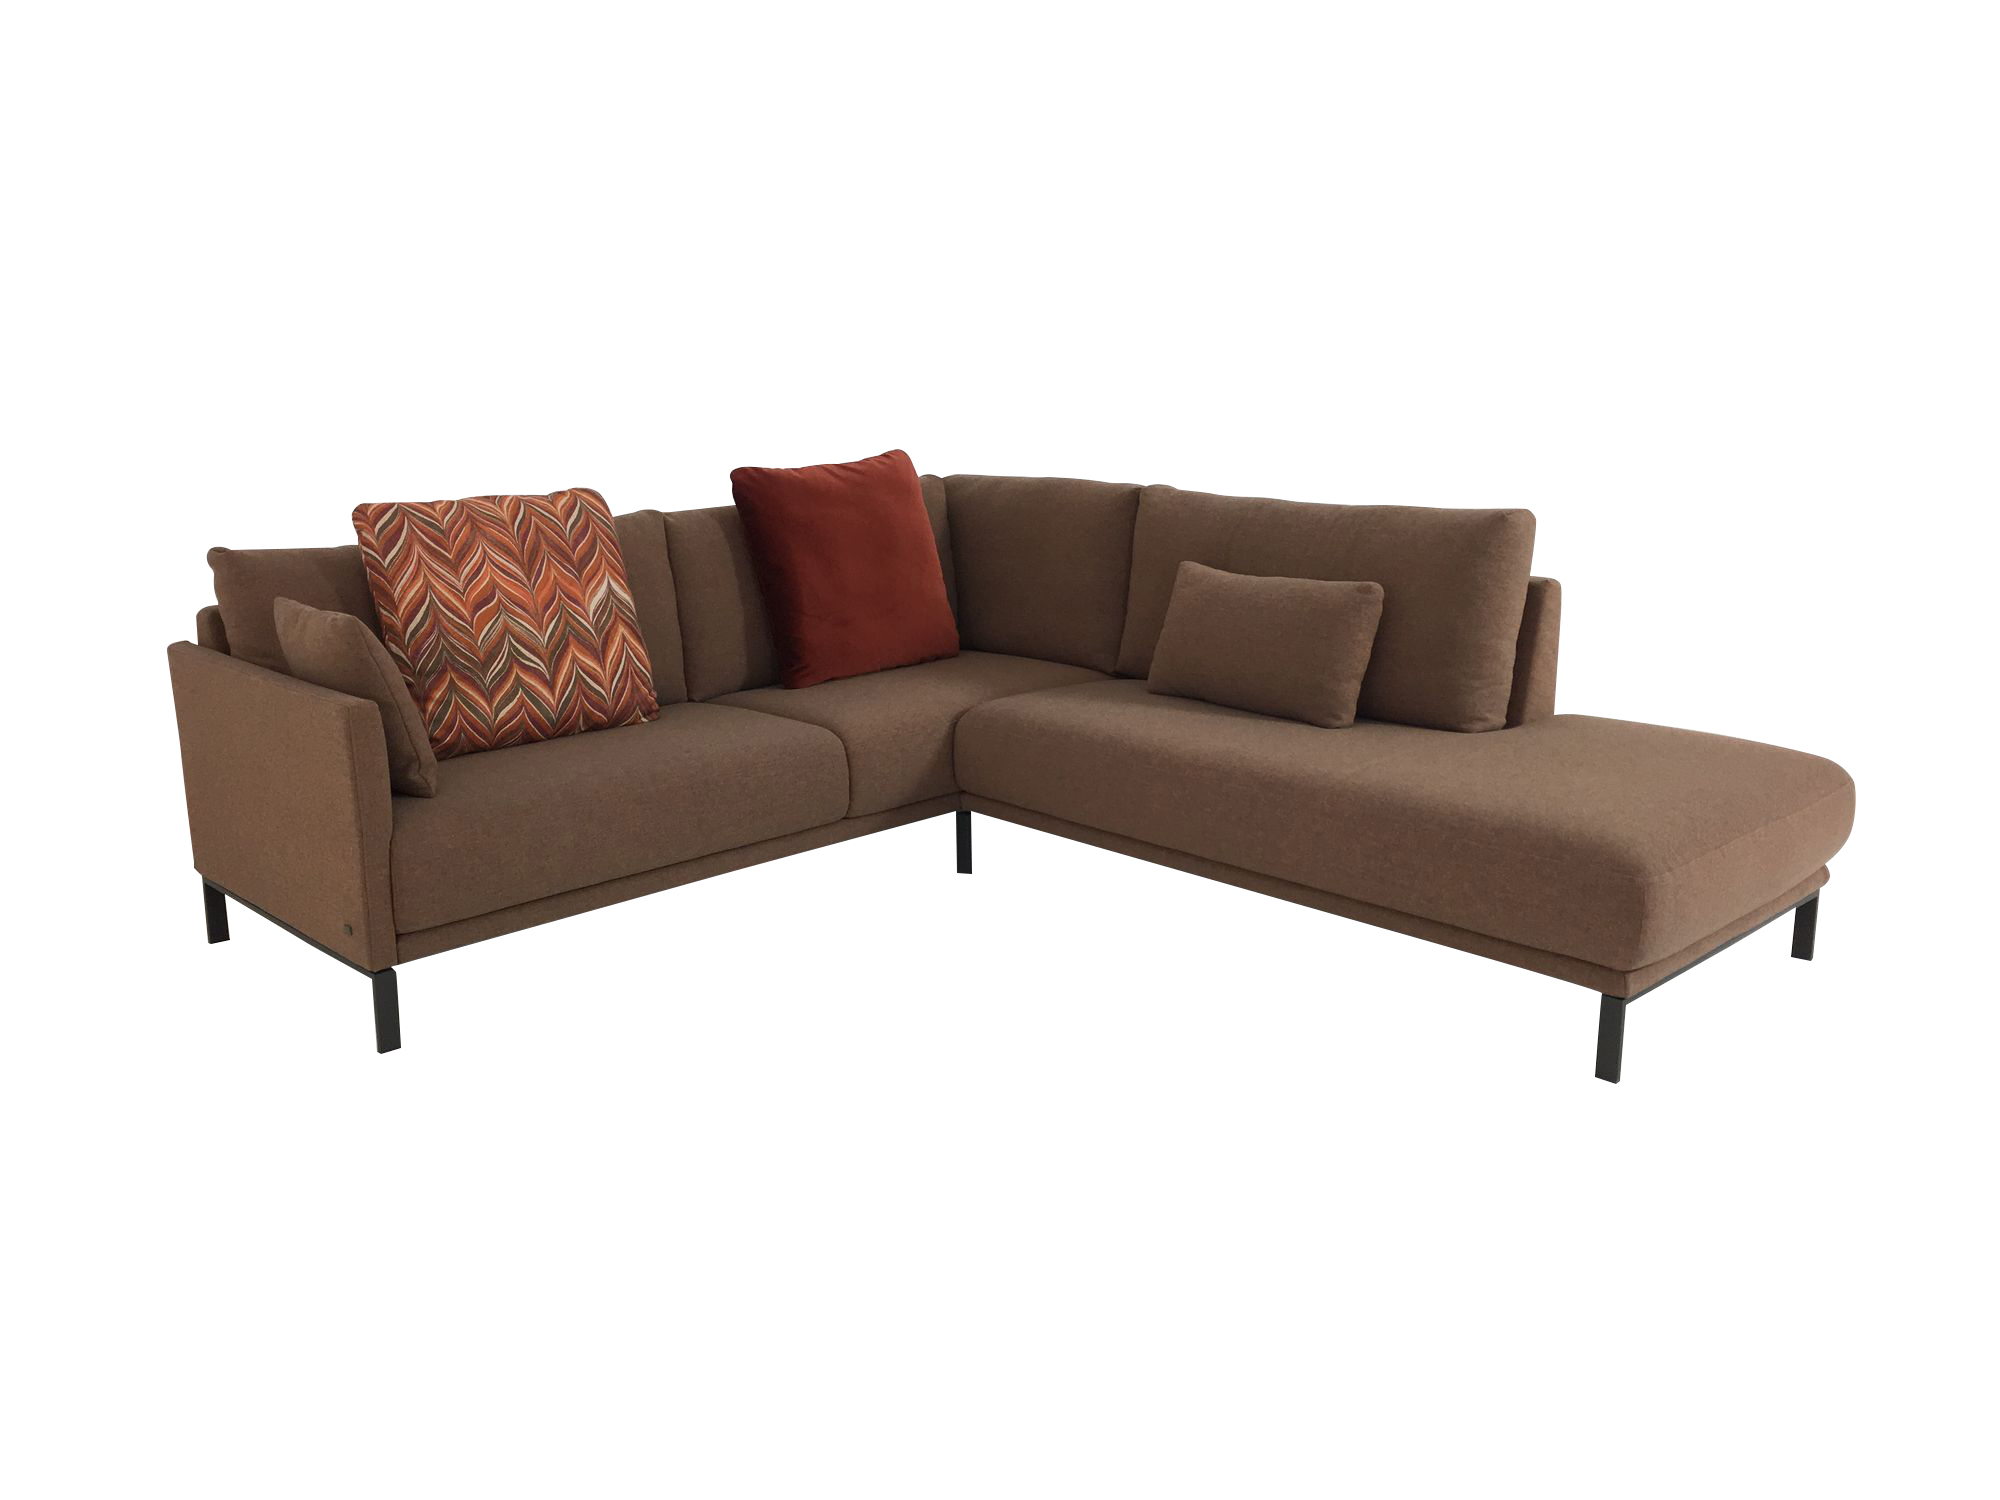 rolf benz cara ecksofa in stoff beige orange mit. Black Bedroom Furniture Sets. Home Design Ideas